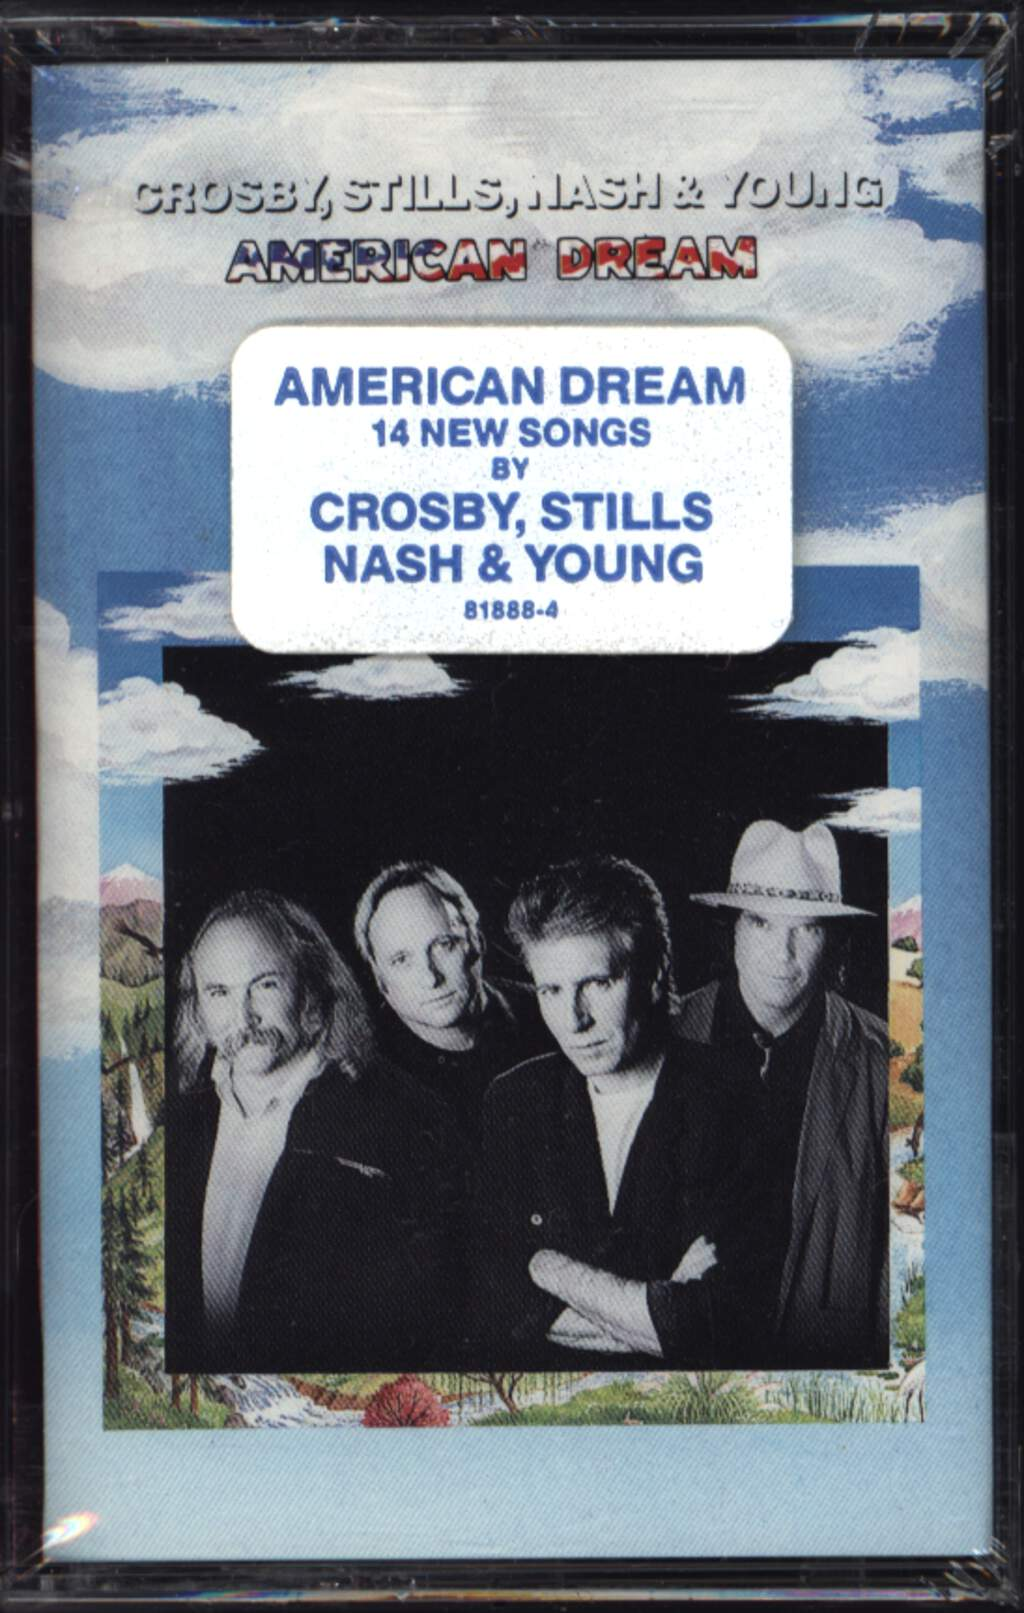 Crosby, Stills, Nash & Young: American Dream, Compact Cassette